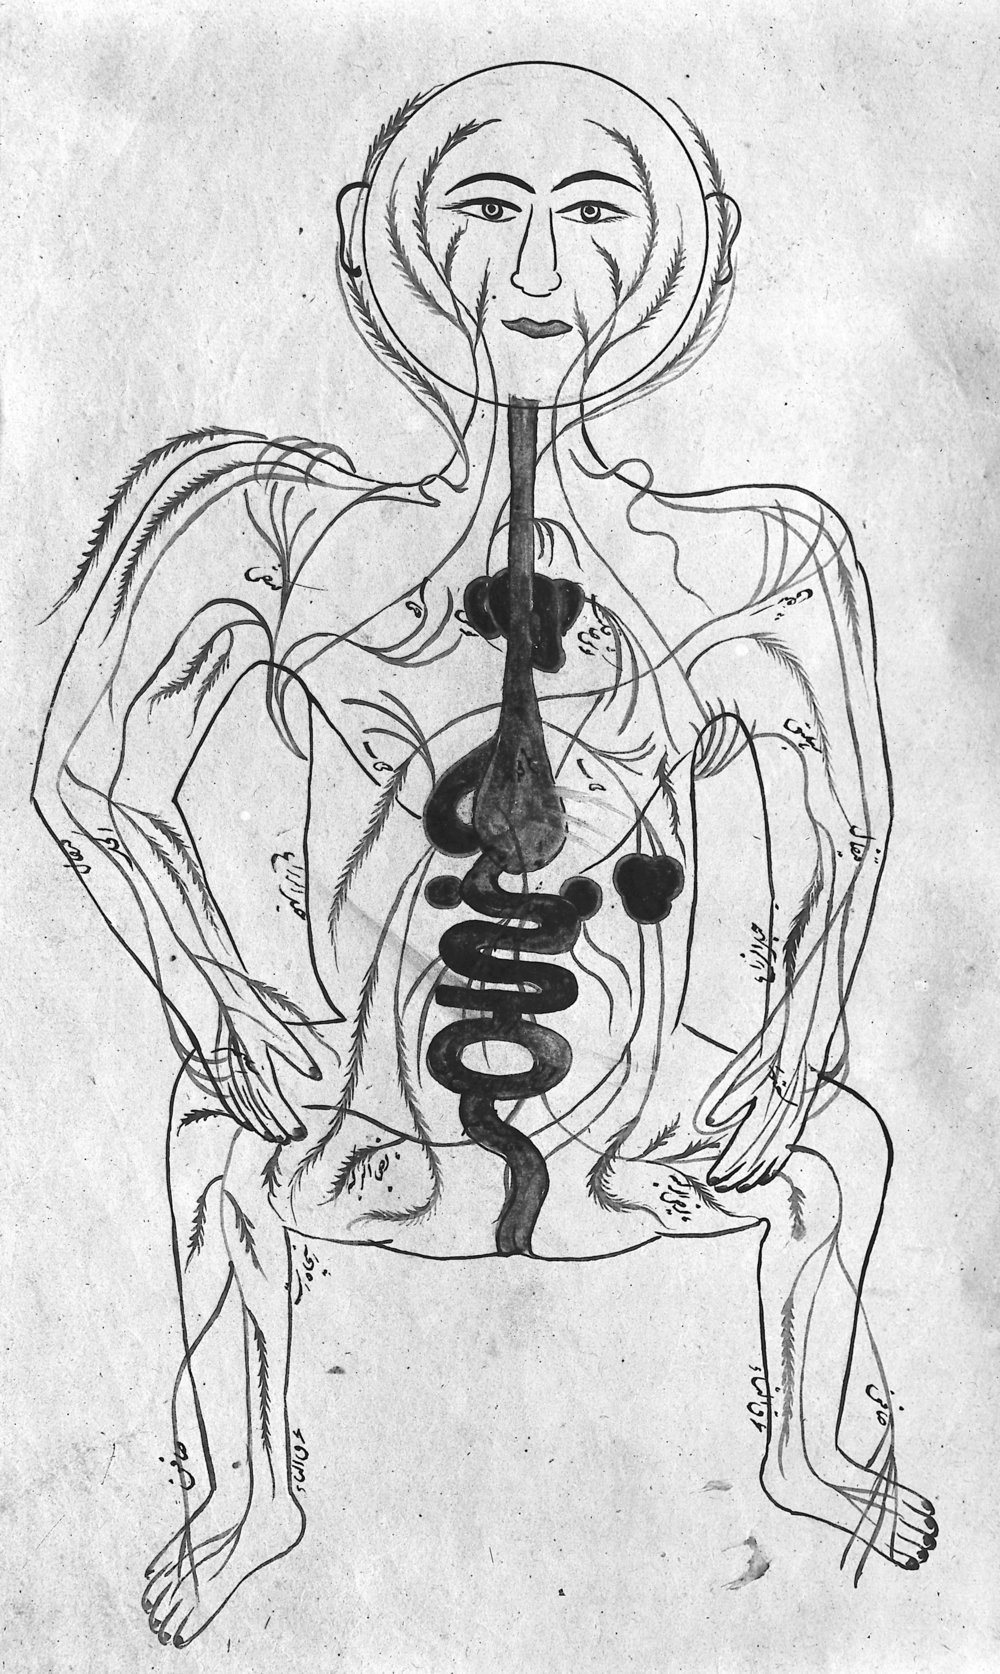 Human_figure_showing_arteries_and_viscera,_Persian,_18th_C_Wellcome_M0007240.jpg